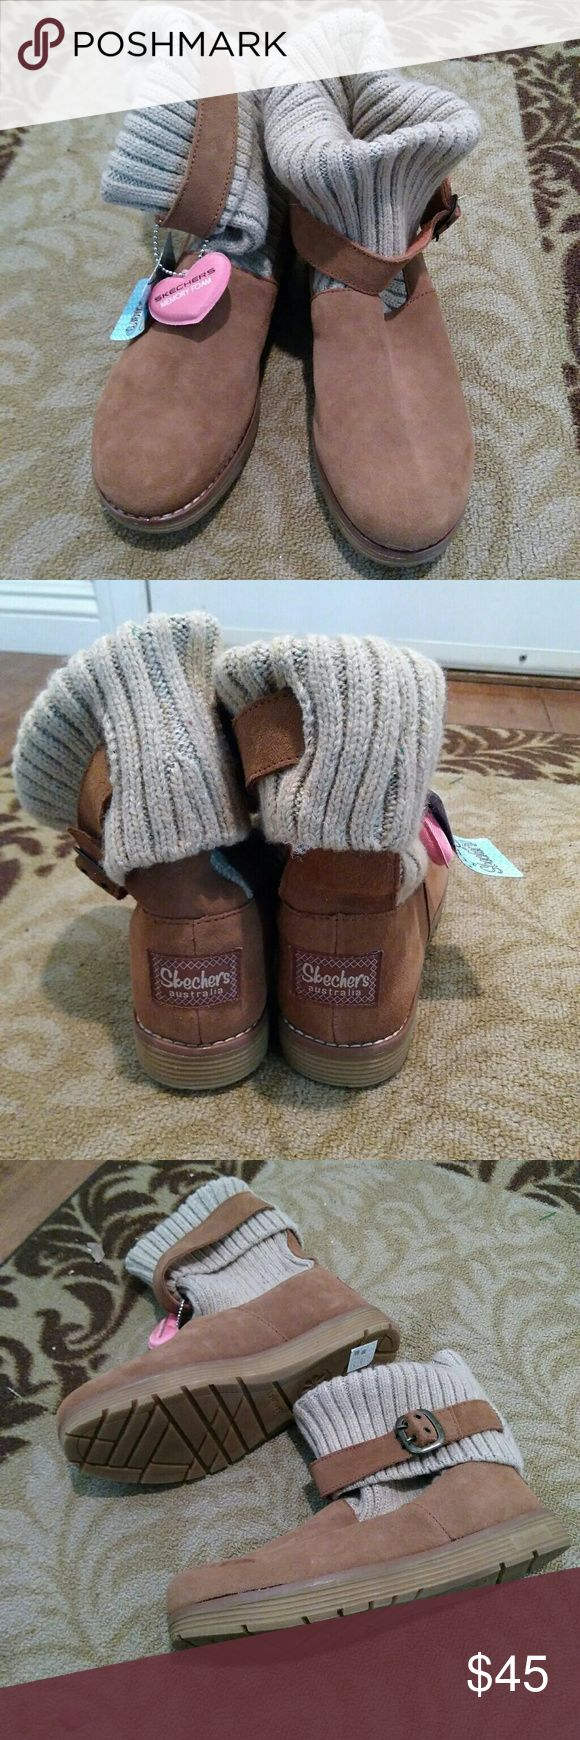 I just added this listing on Poshmark: NWT Skechers knit suede boots. #shopmycloset #poshmark #fashion #shopping #style #forsale #Skechers #Shoes